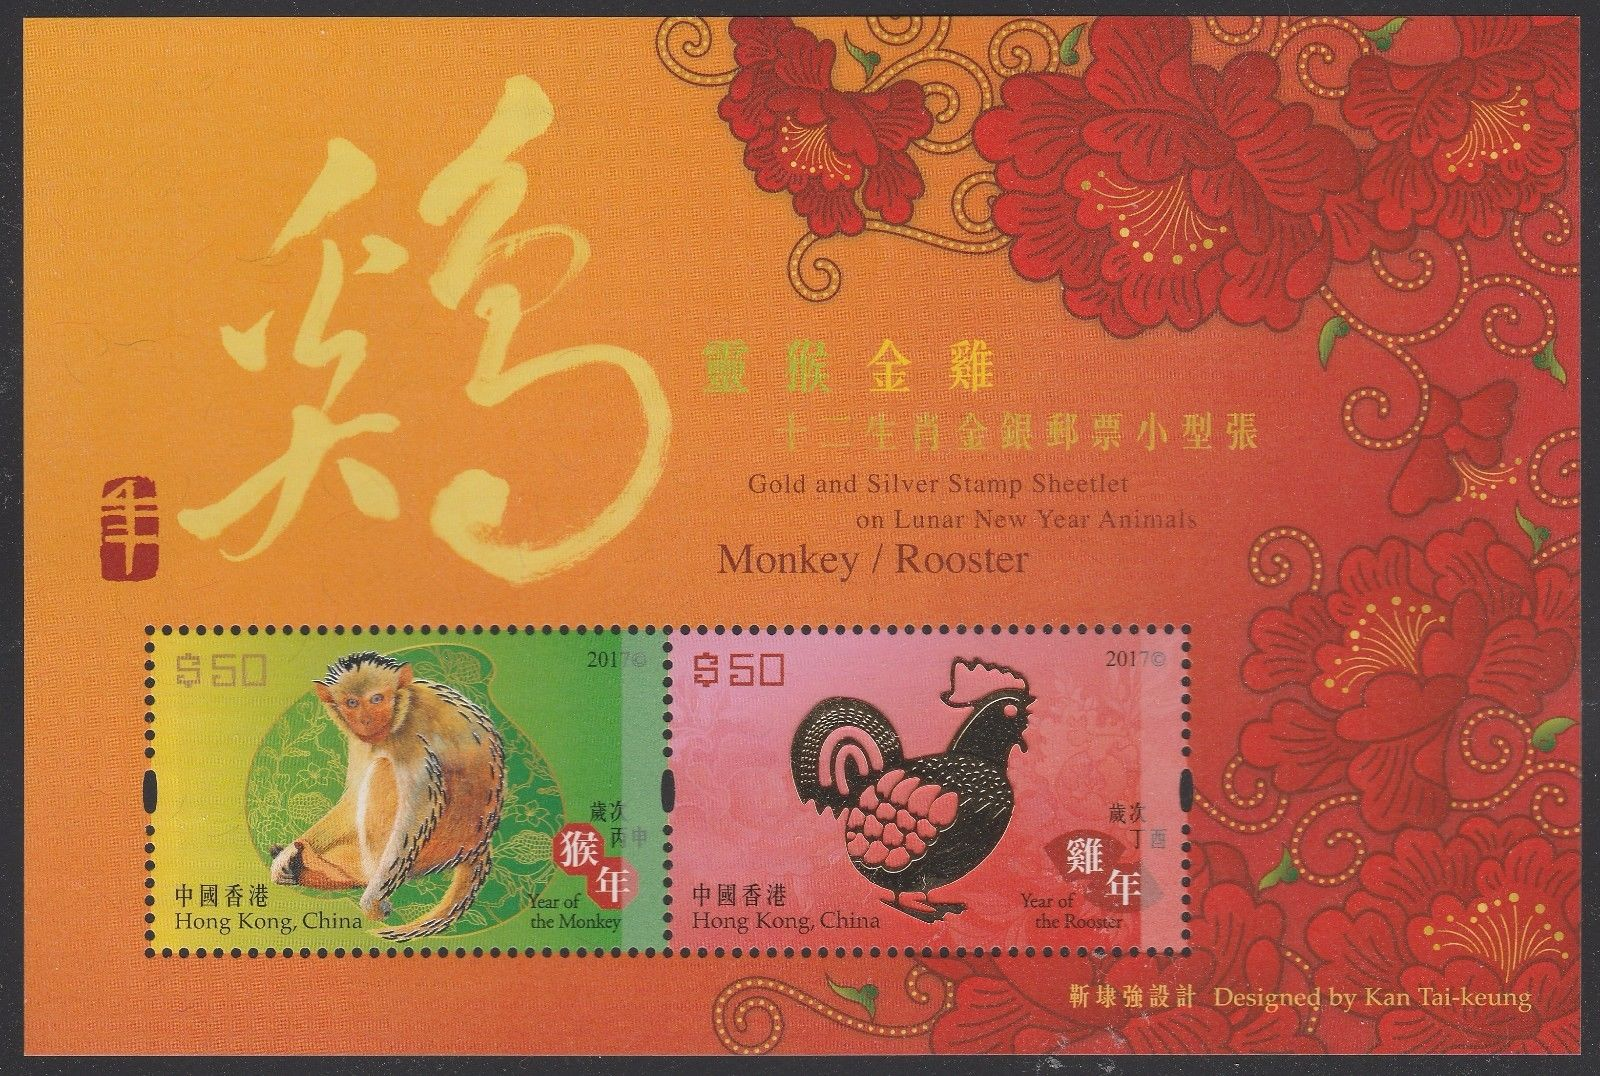 Hong Kong Gold Silver Lunar New Year Monkey Rooster HKD 100 Stamp